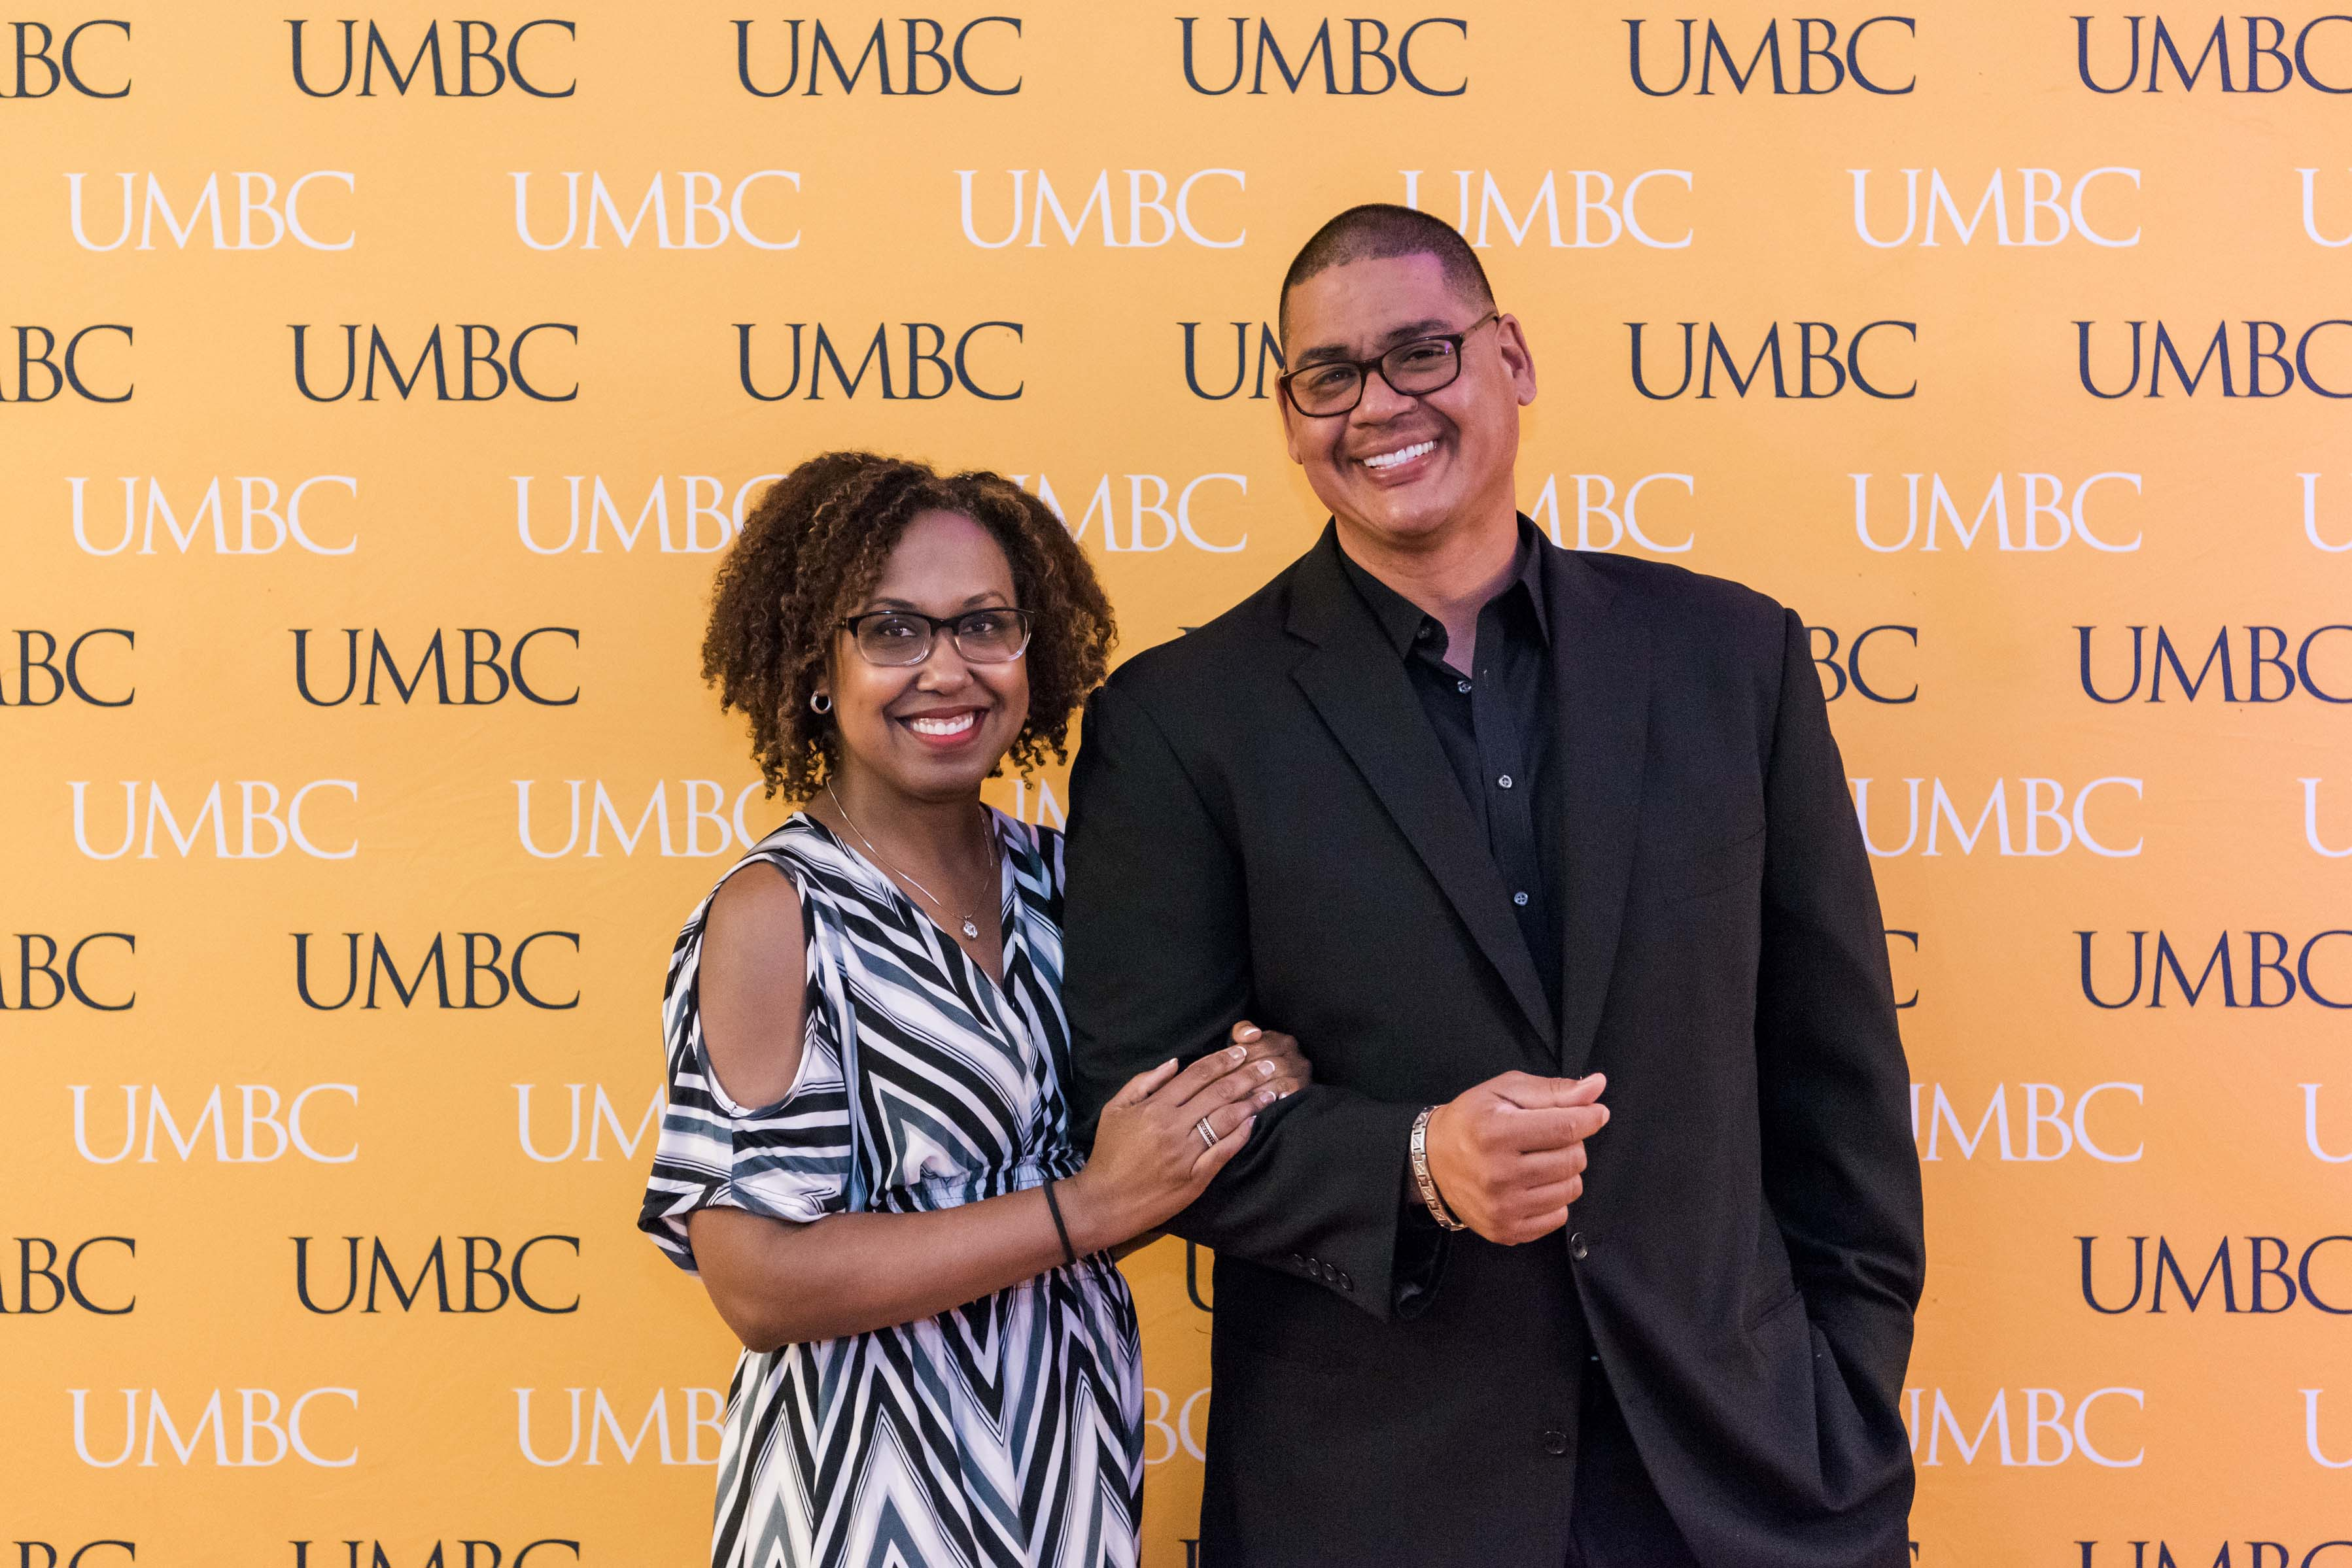 Couple pose with UMBC wall at 2018 CYA event